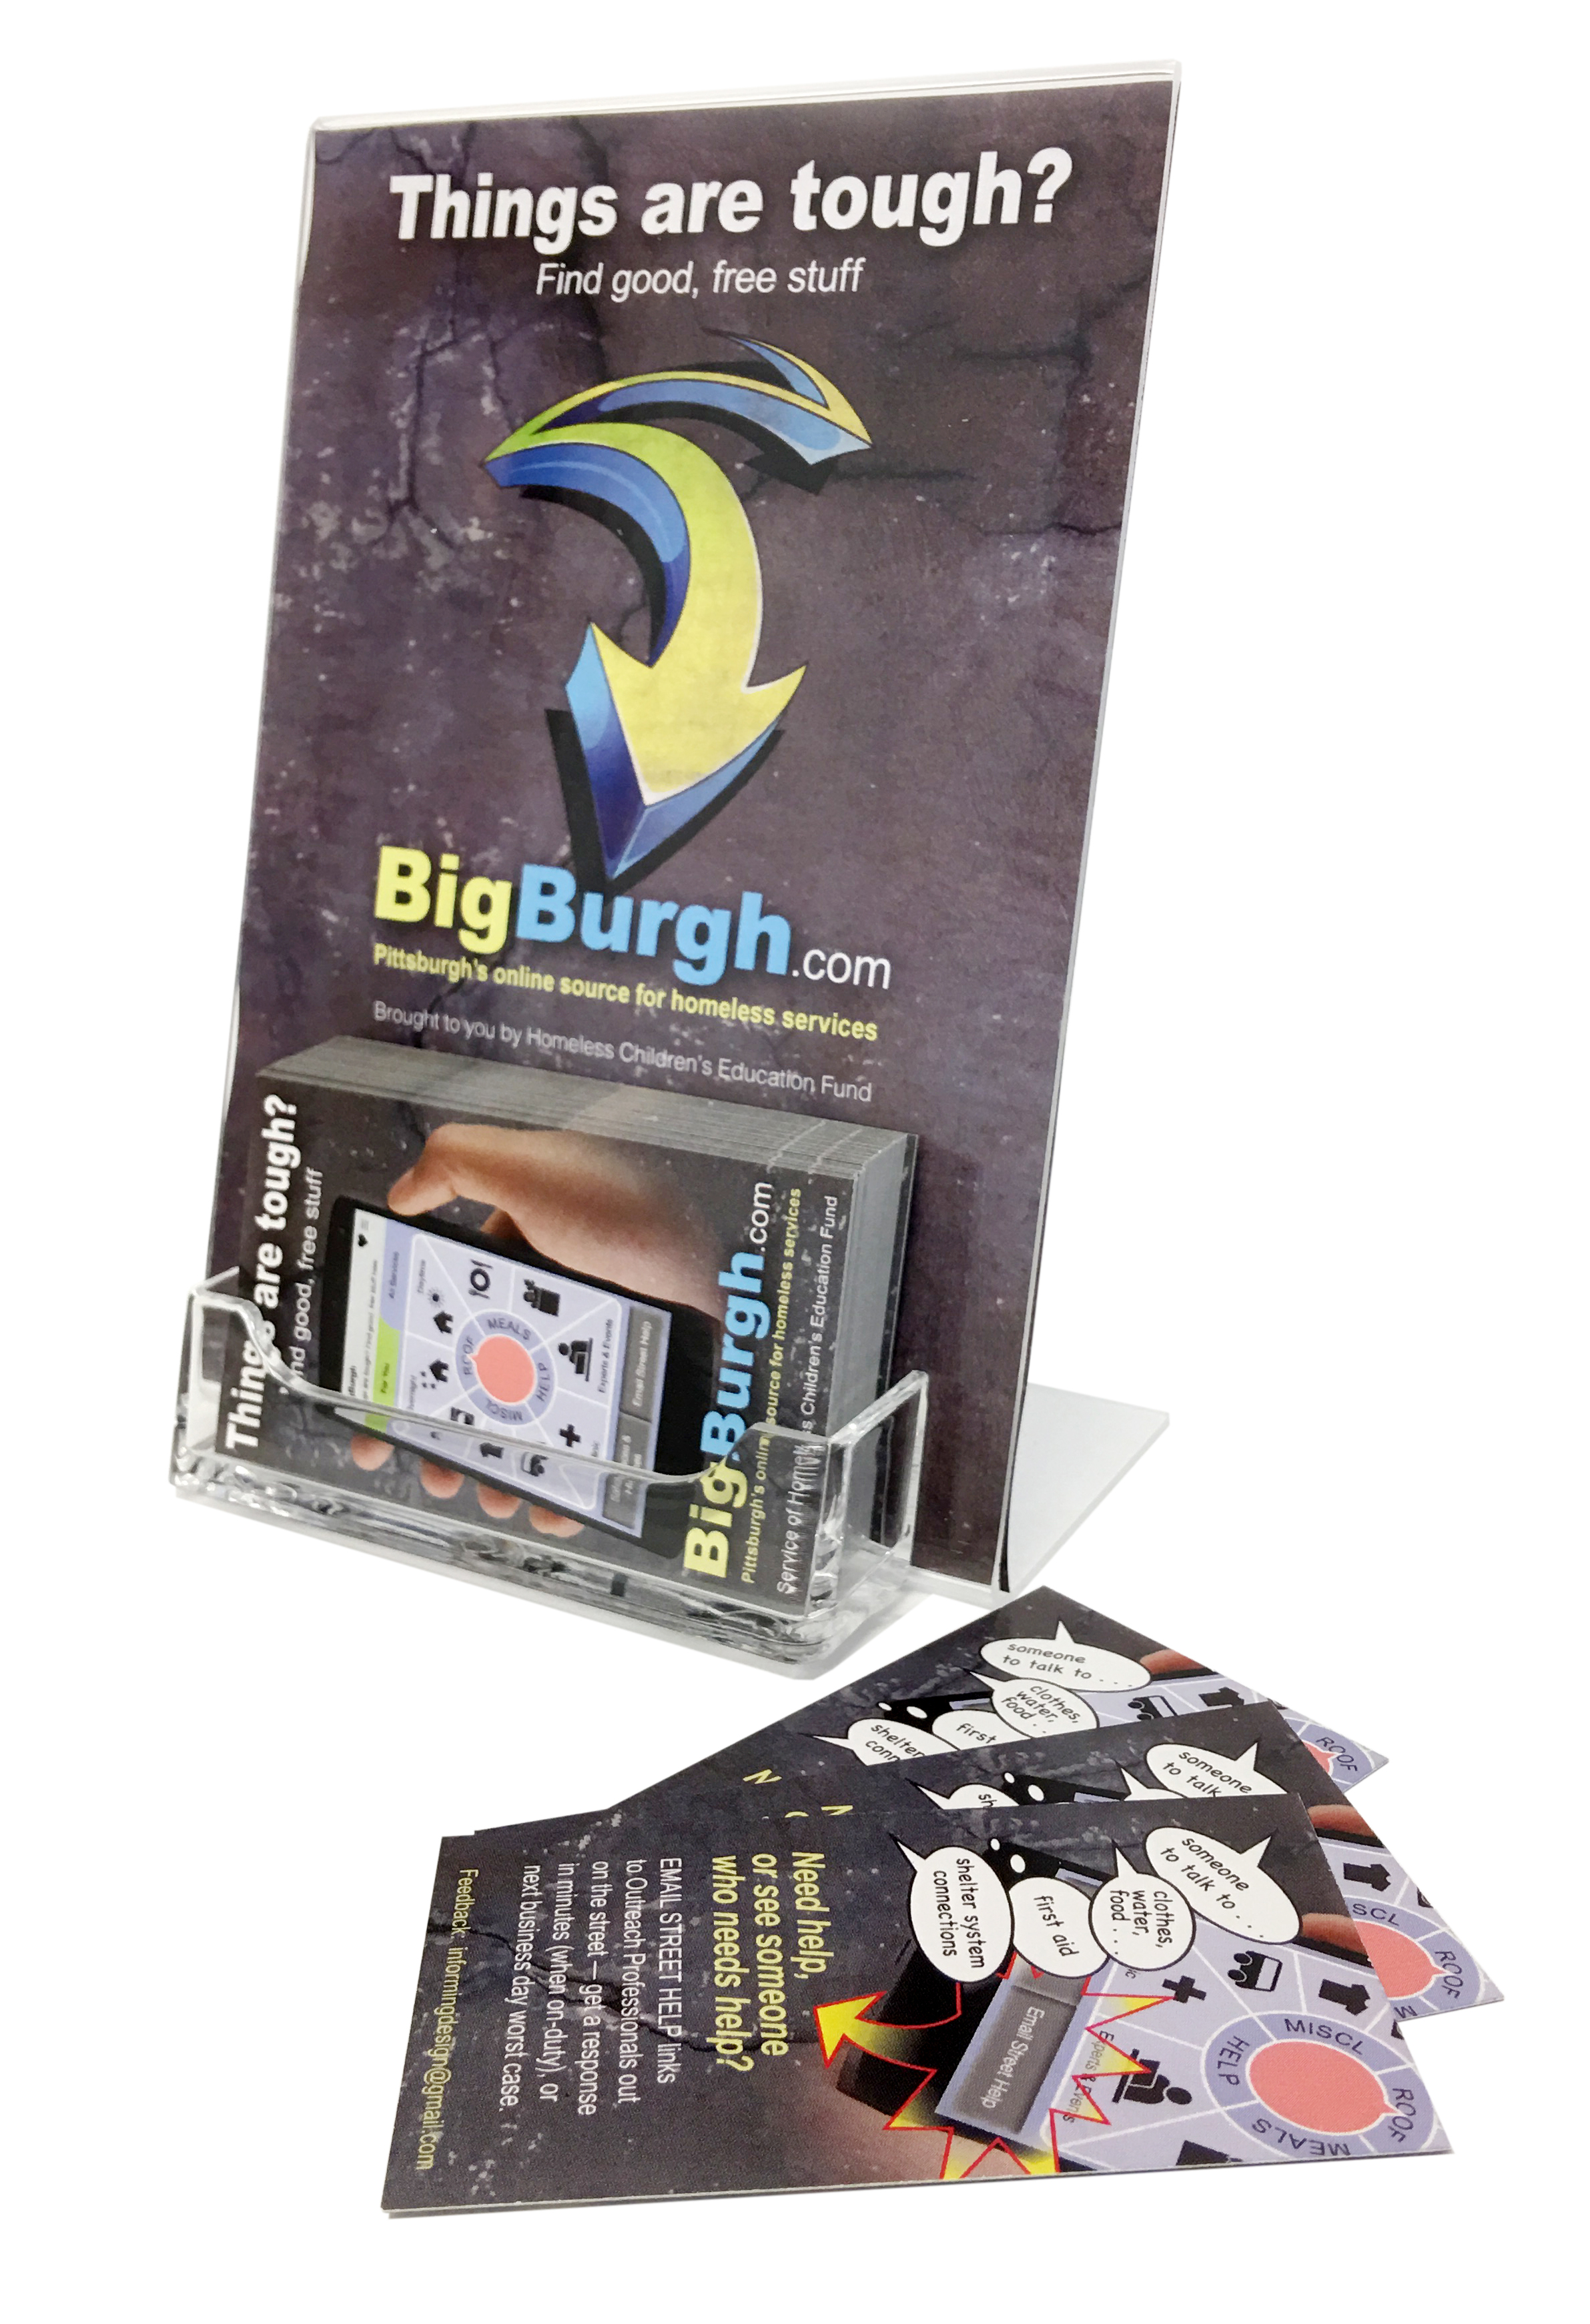 5,000 BigBurgh business cards are printed each month and distributed to libraries, agencies, and professionals.